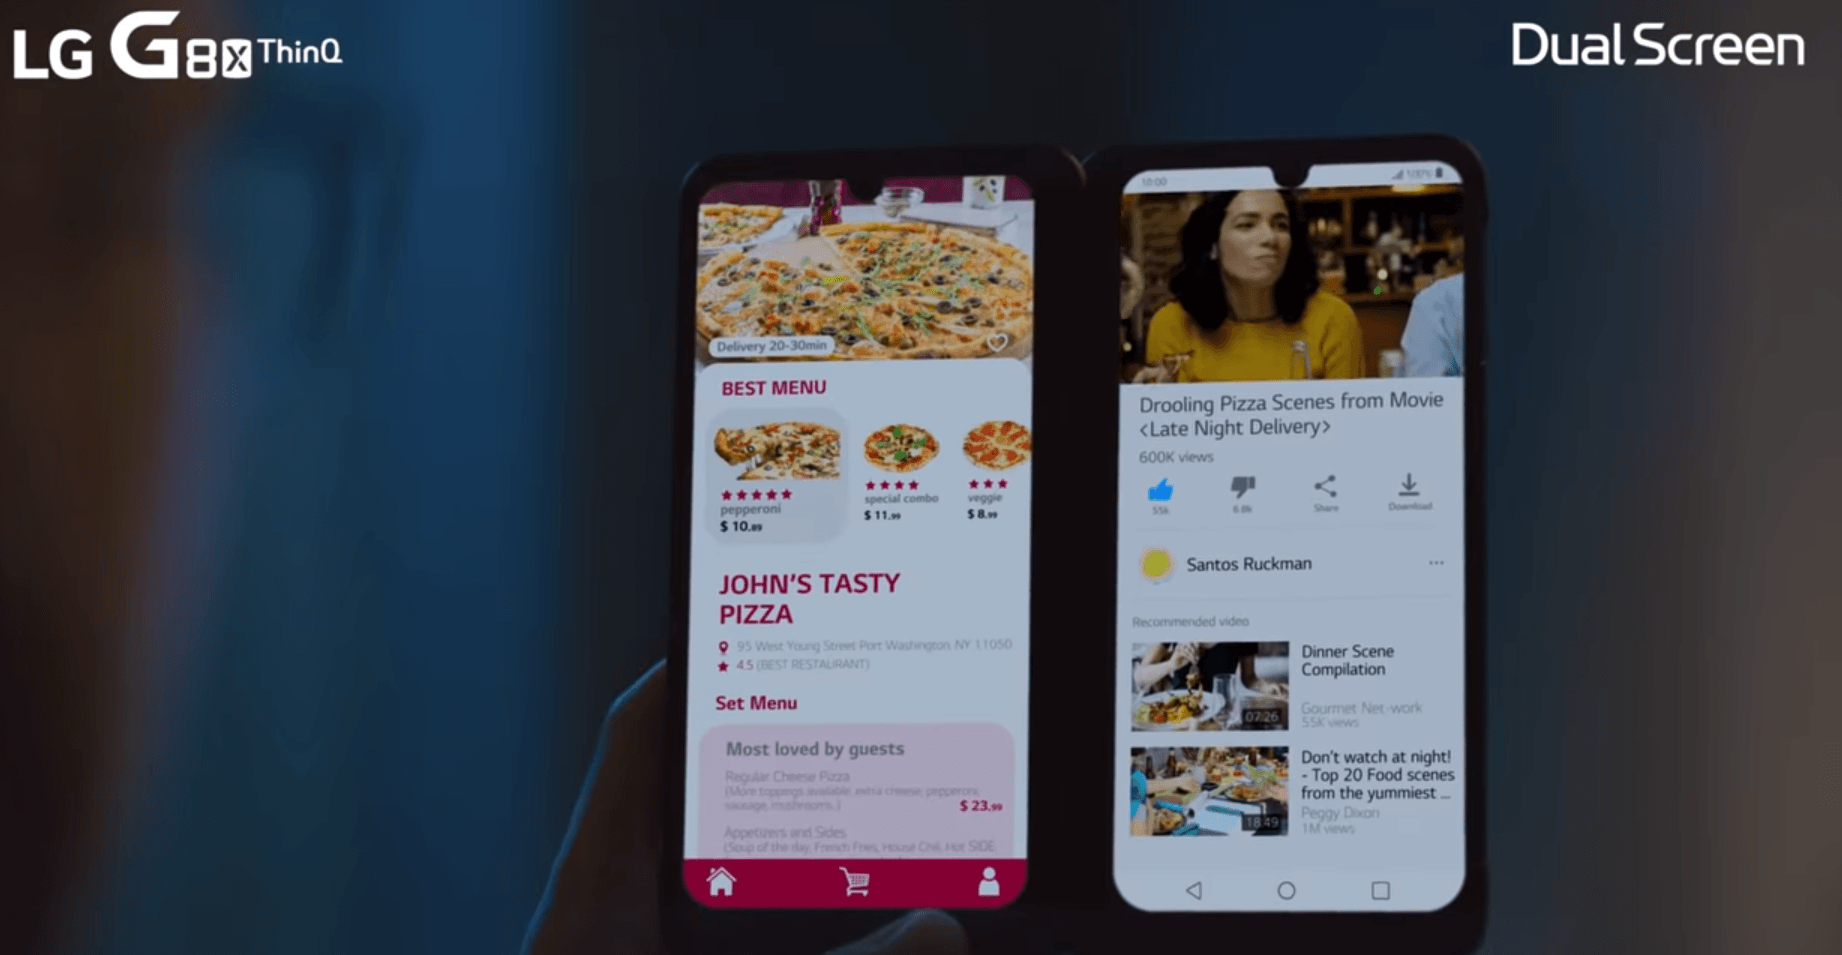 LG G8X Dual Screen vs Galaxy Fold: Which one is better?